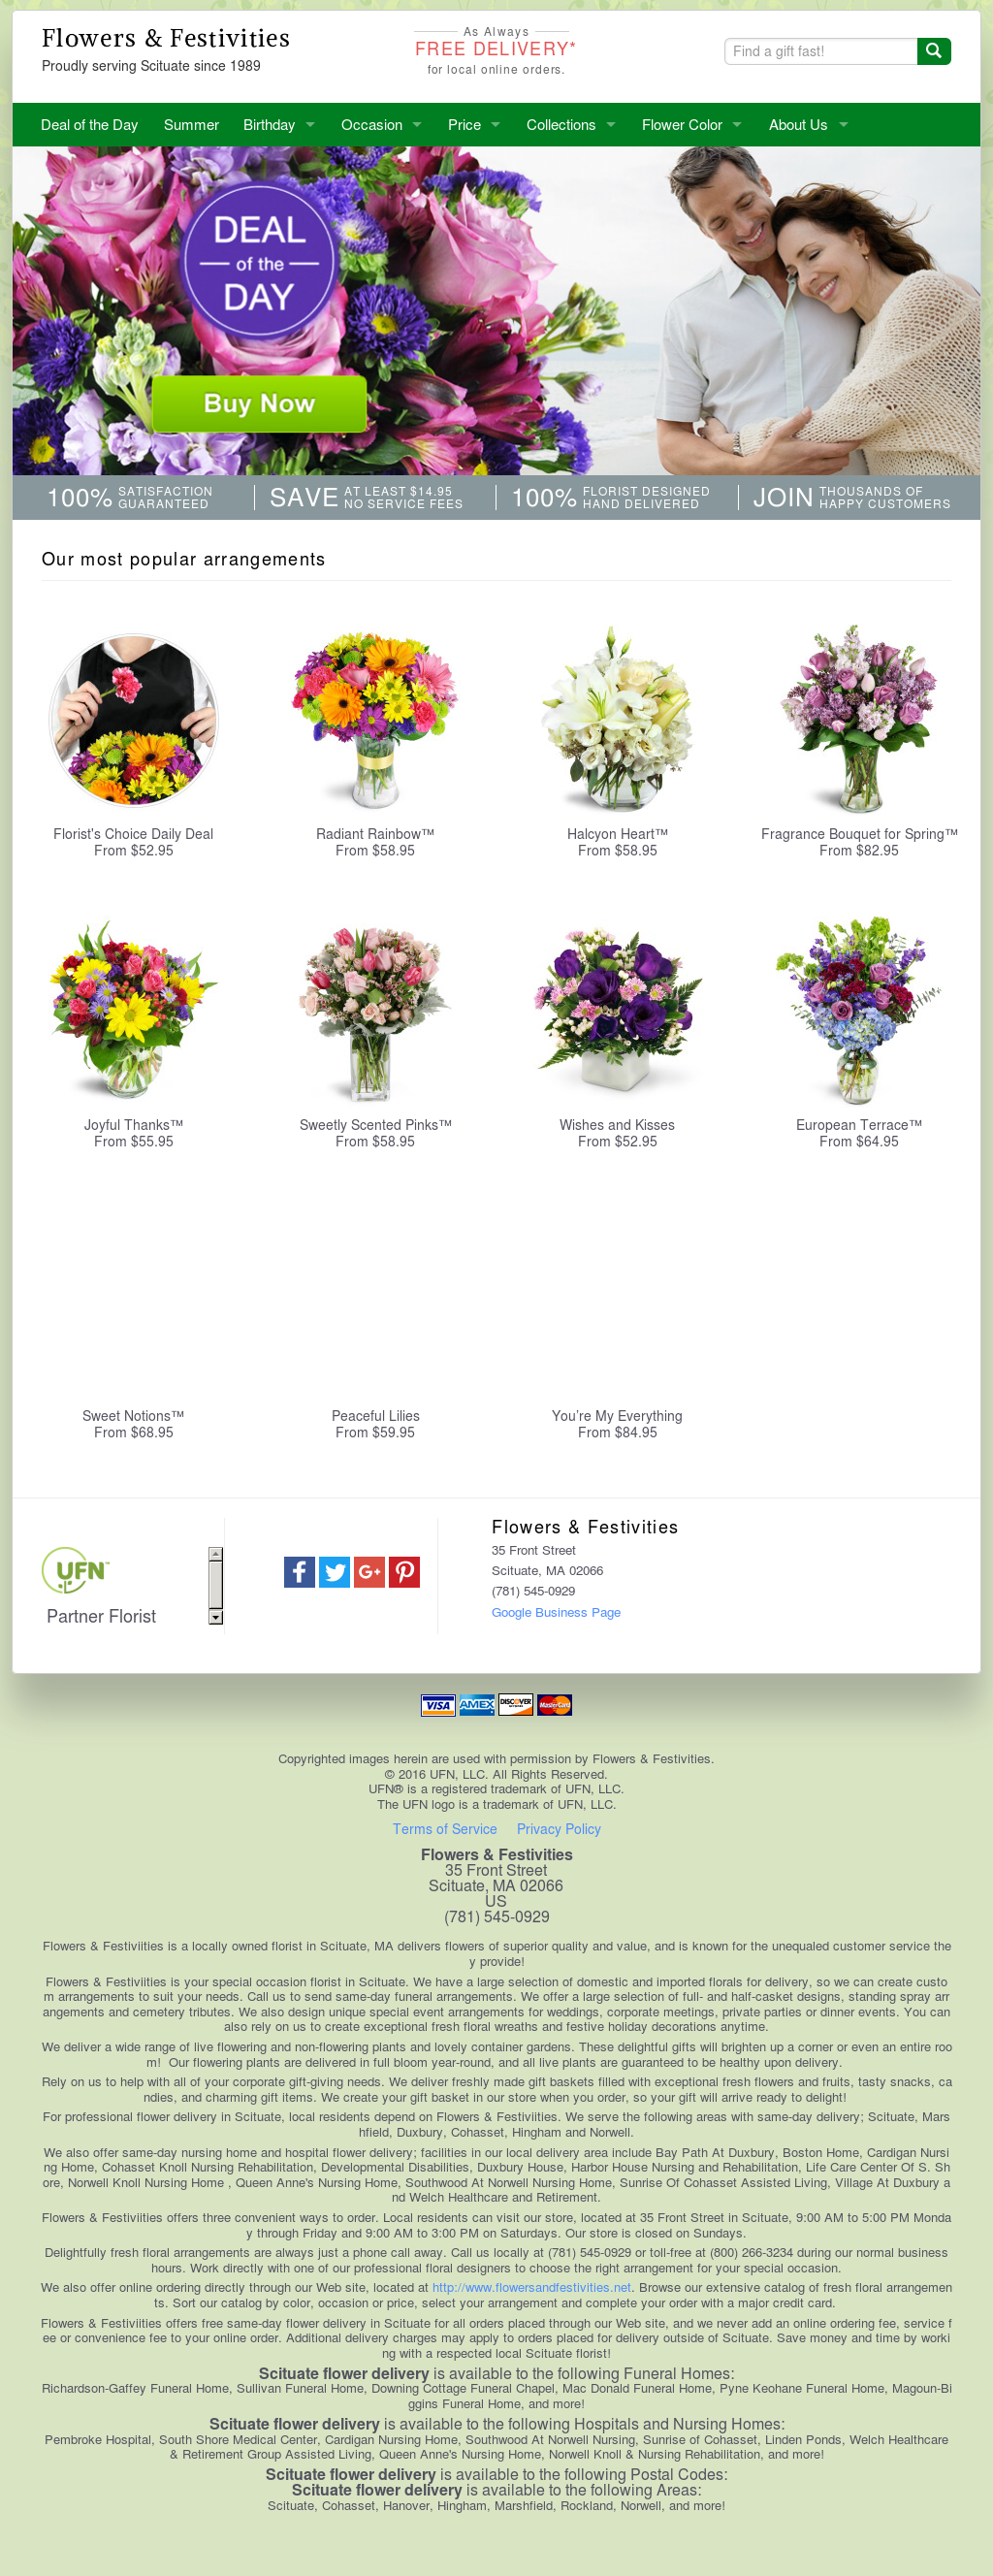 Flowers & Festivities Competitors, Revenue and Employees - Owler Company Profile